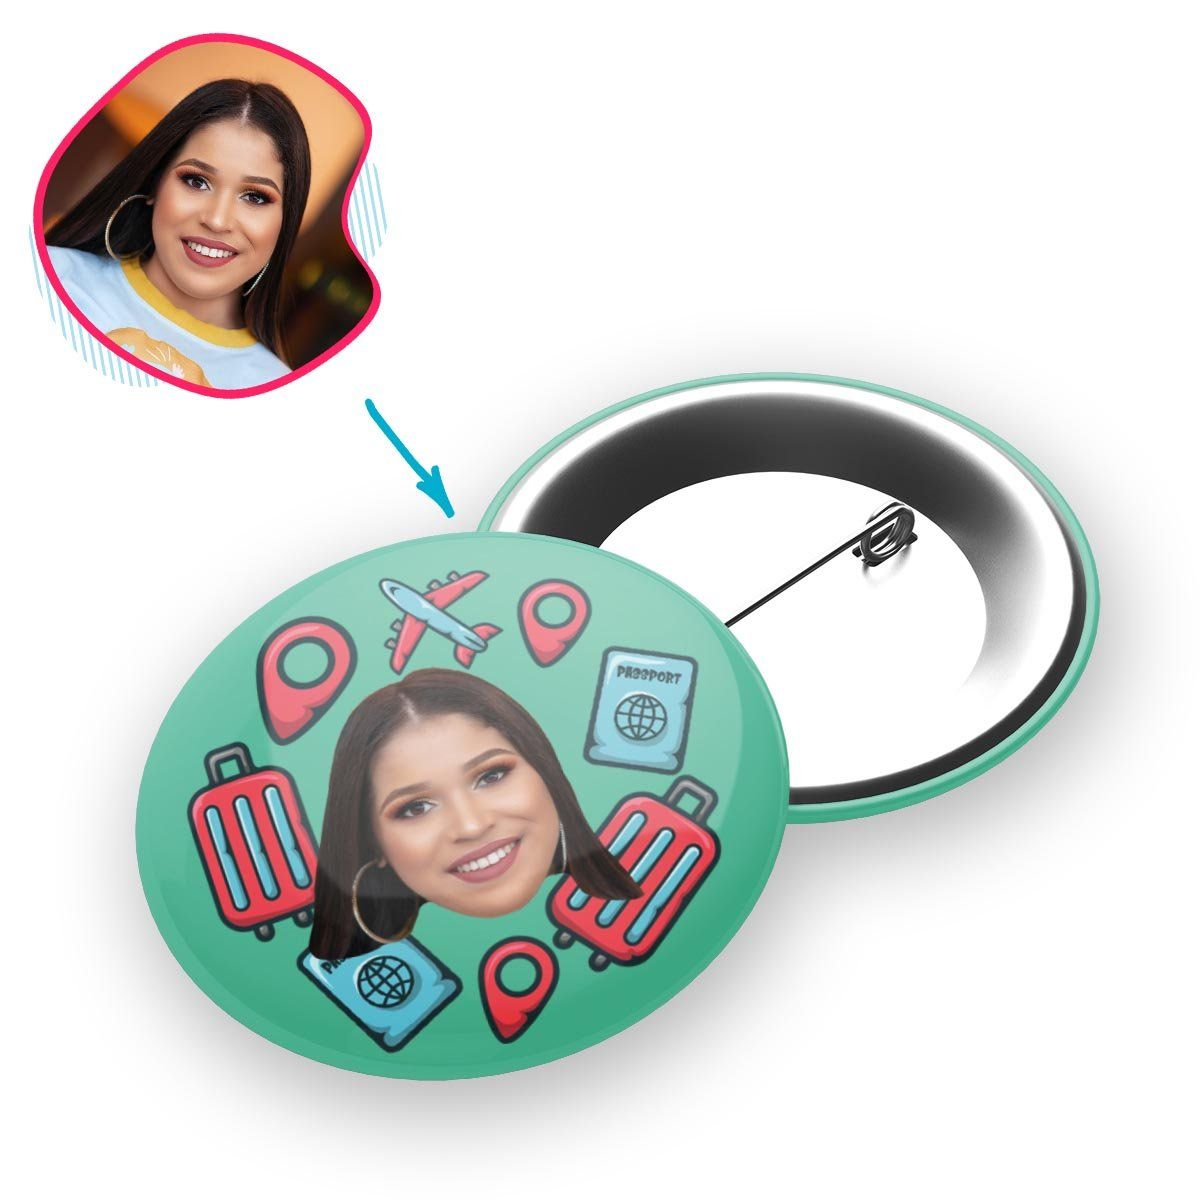 mint Traveler pin personalized with photo of face printed on it